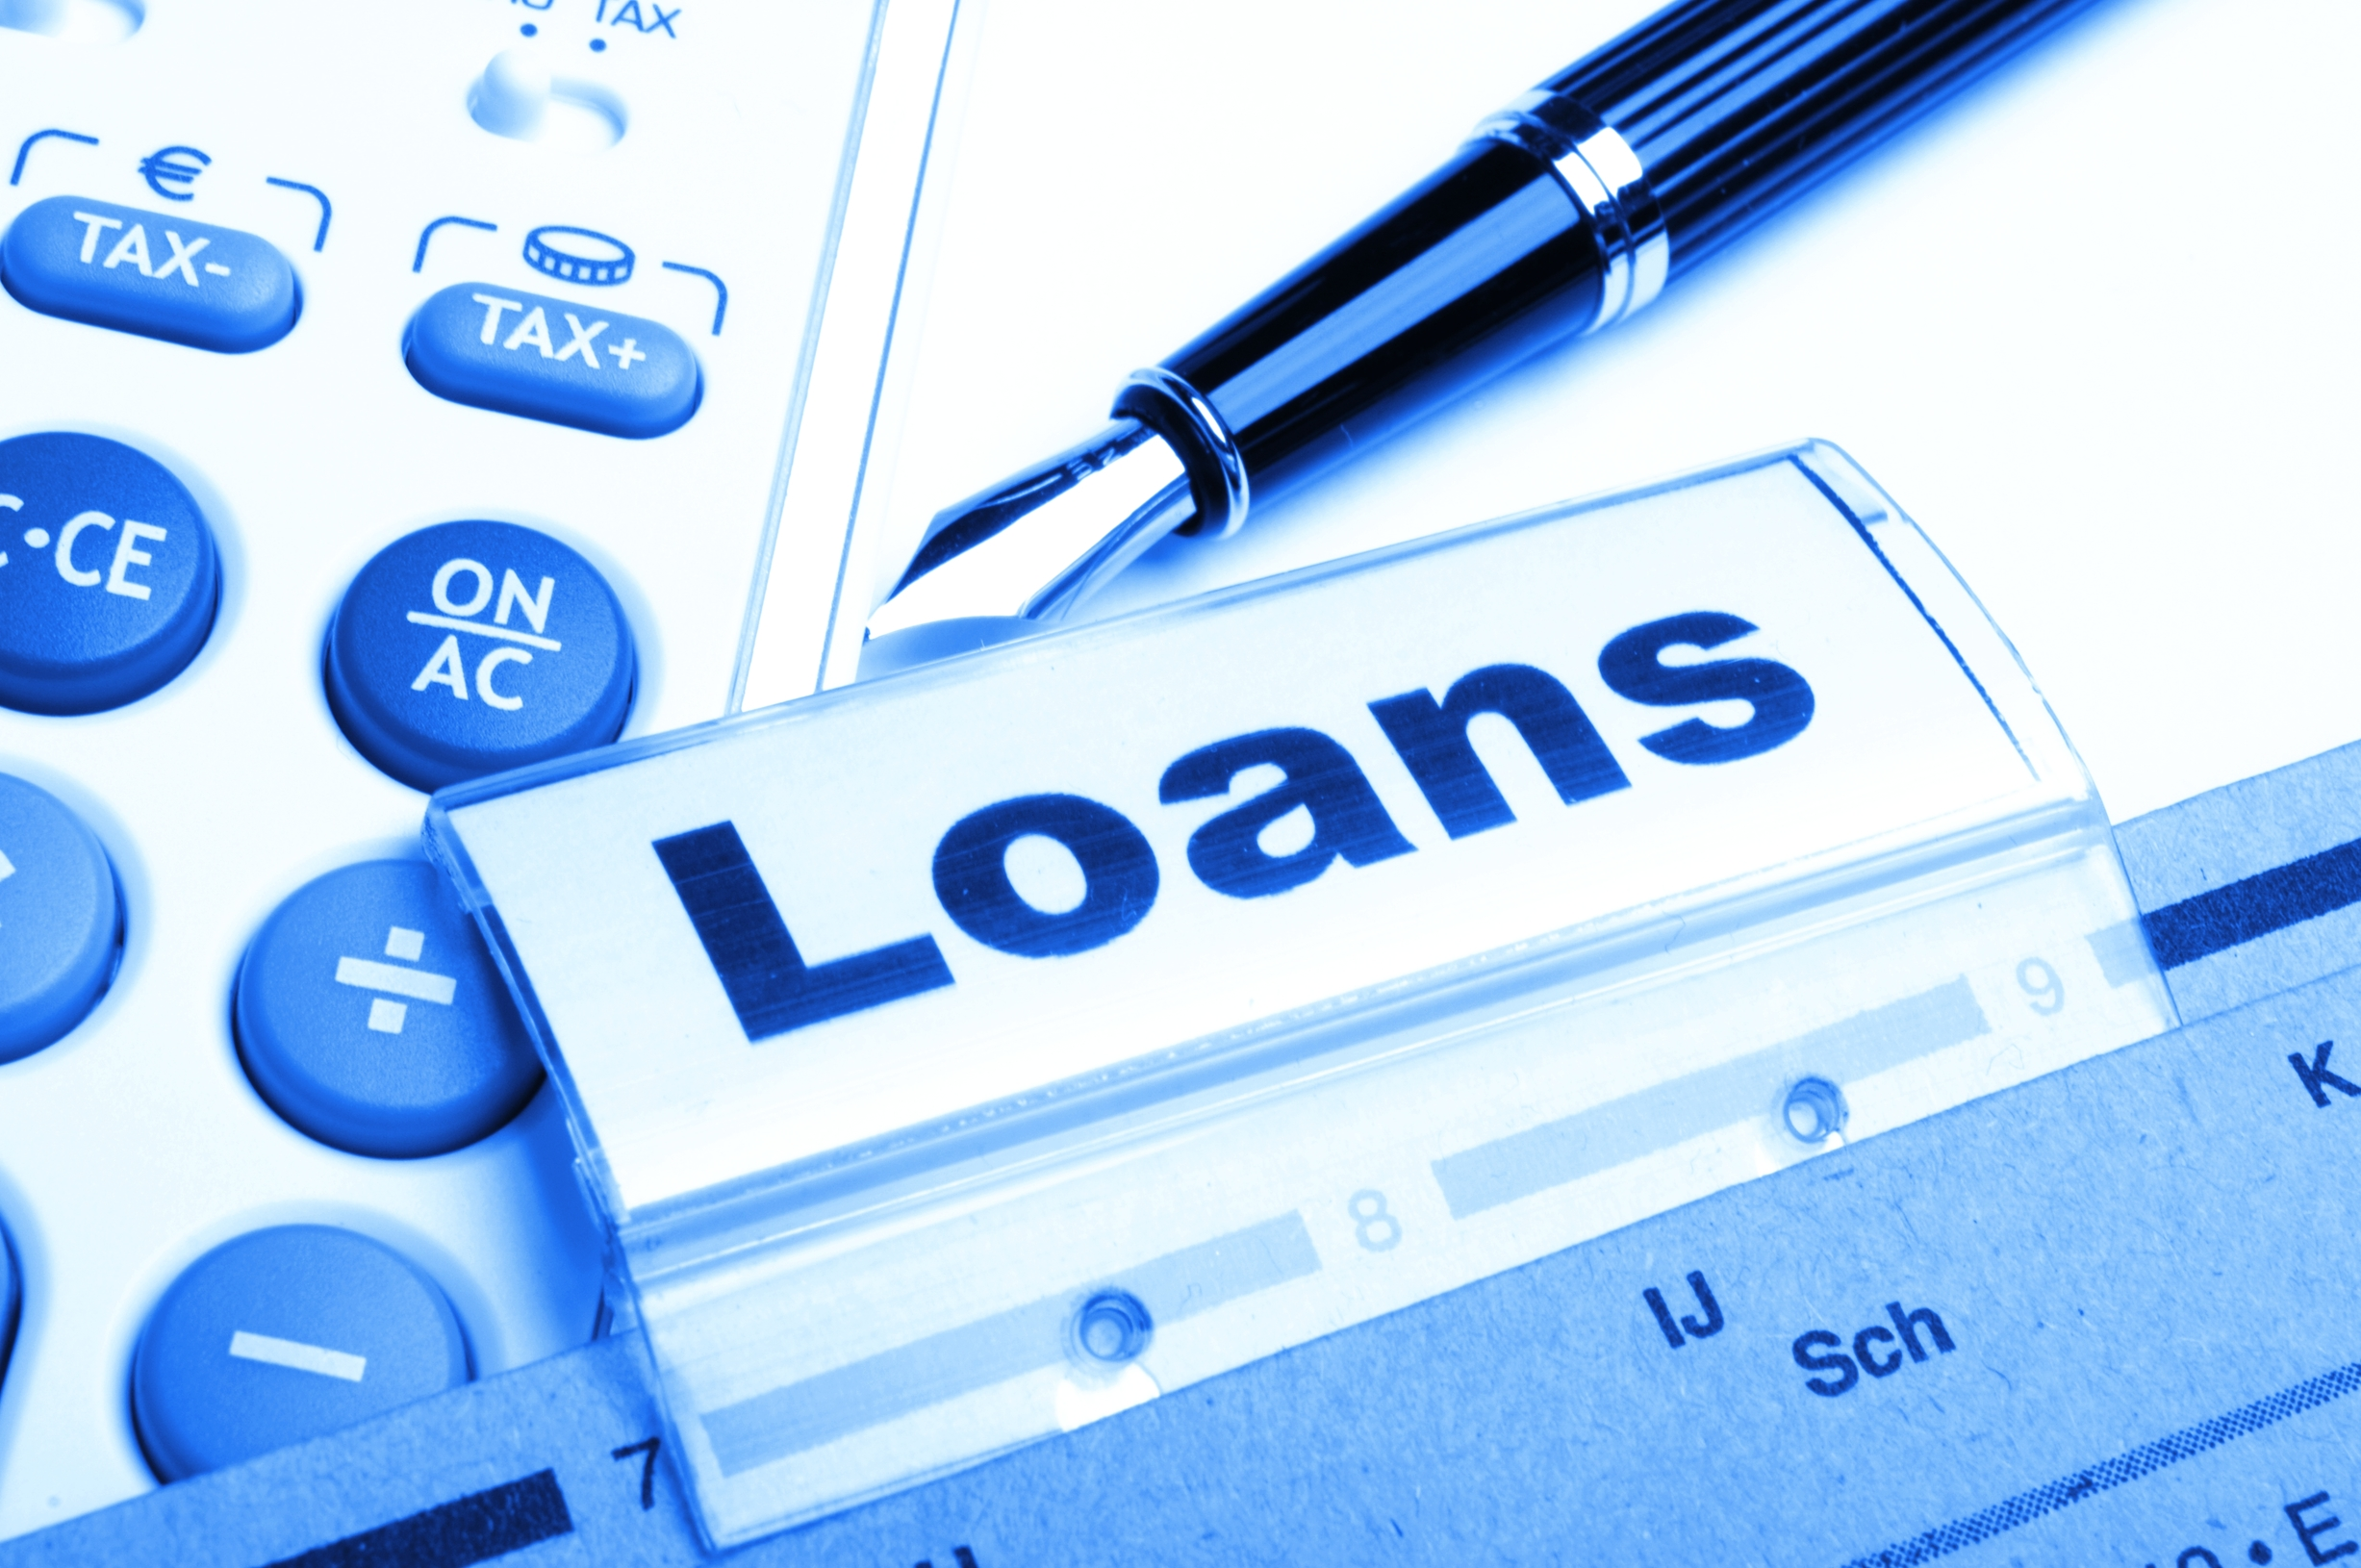 LOAN SCHEME FOR BUSINESSES IN SINGAPORE (2017 update)